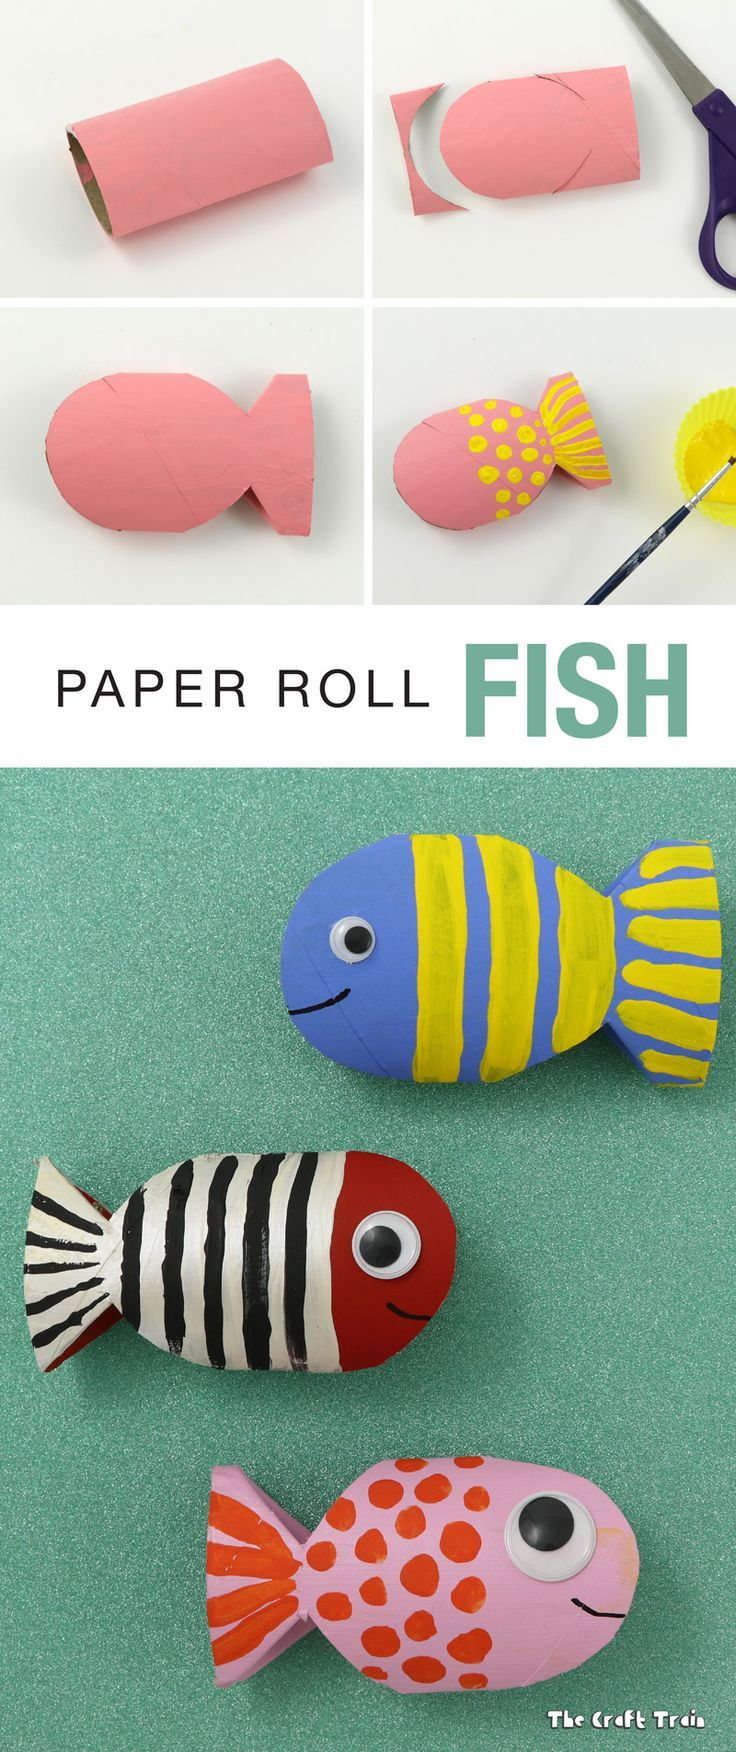 Cutest Fish In The Sea Make These Adorable Paper Roll Fish A Great Way To Let Kids Use Their Imagination And Create New Fish